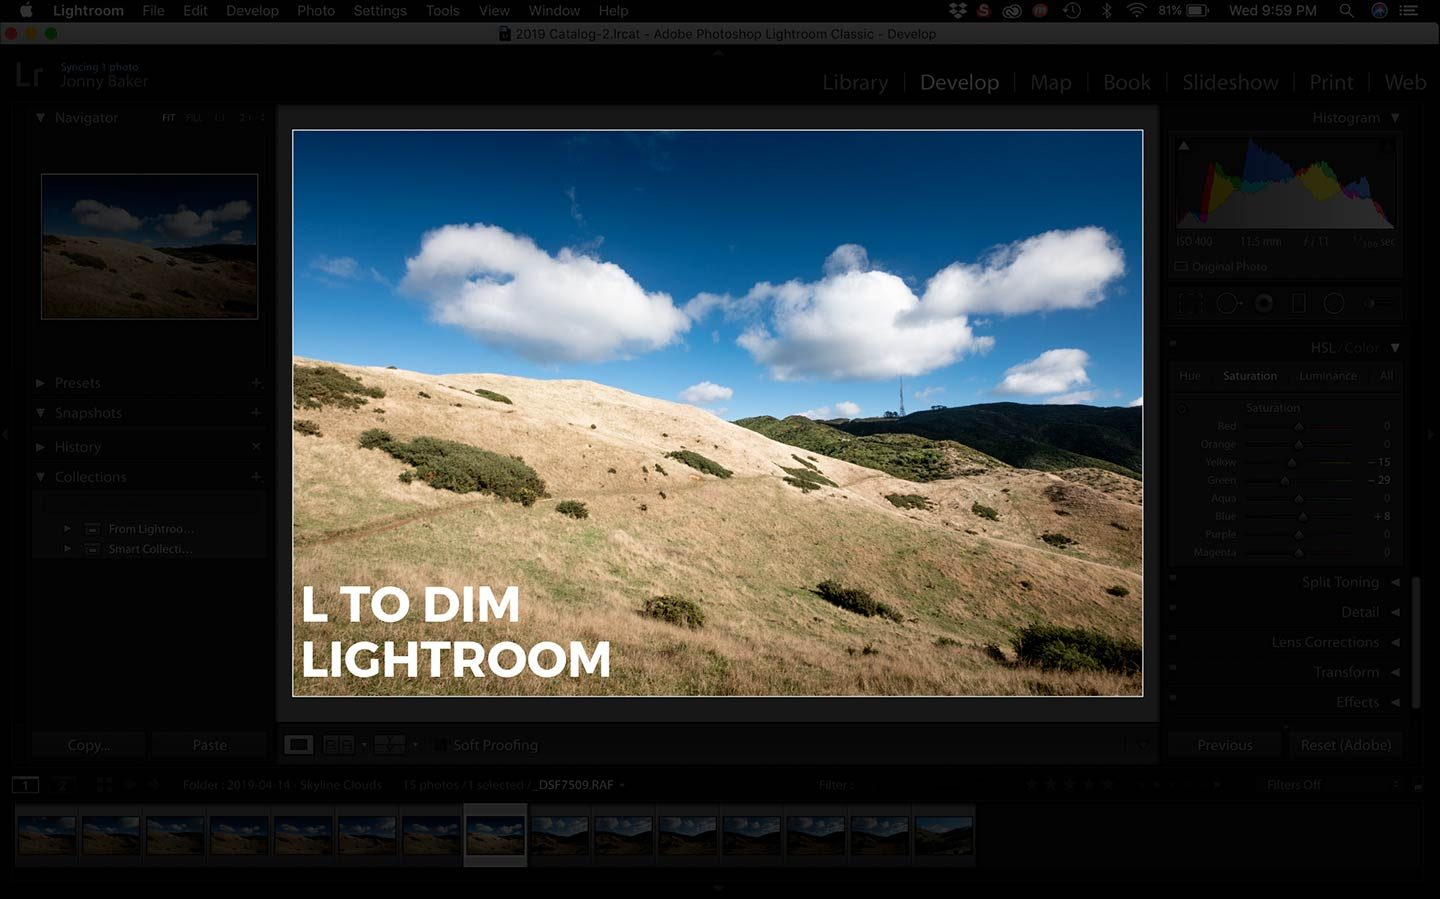 In the screenshot you can see the shortcut that dims Lightroom to make your photo stand out more.